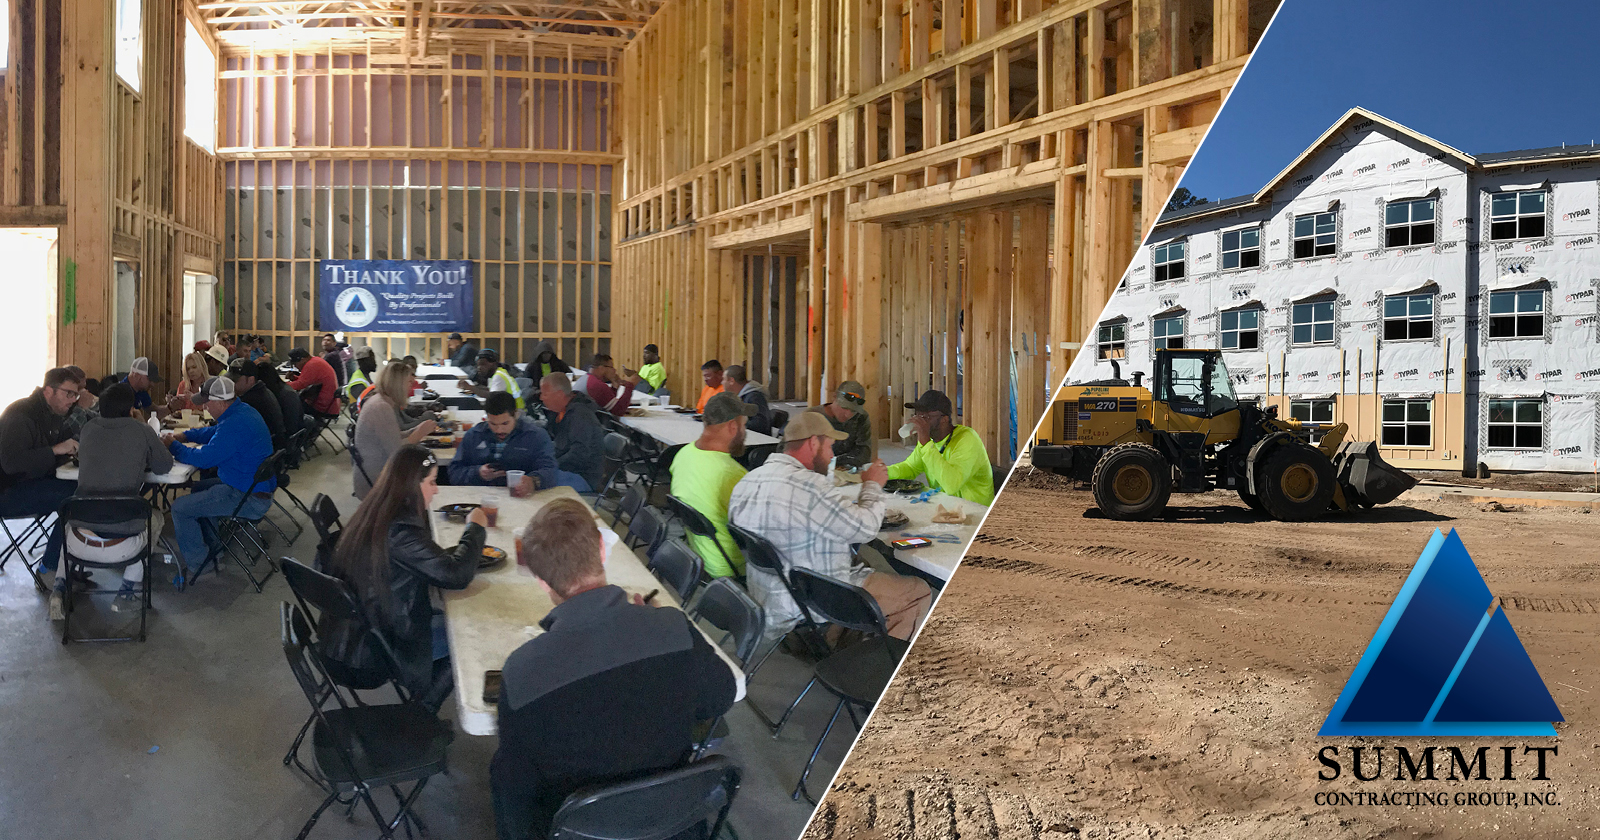 Construction workers eating lunch and exterior of building being constructed